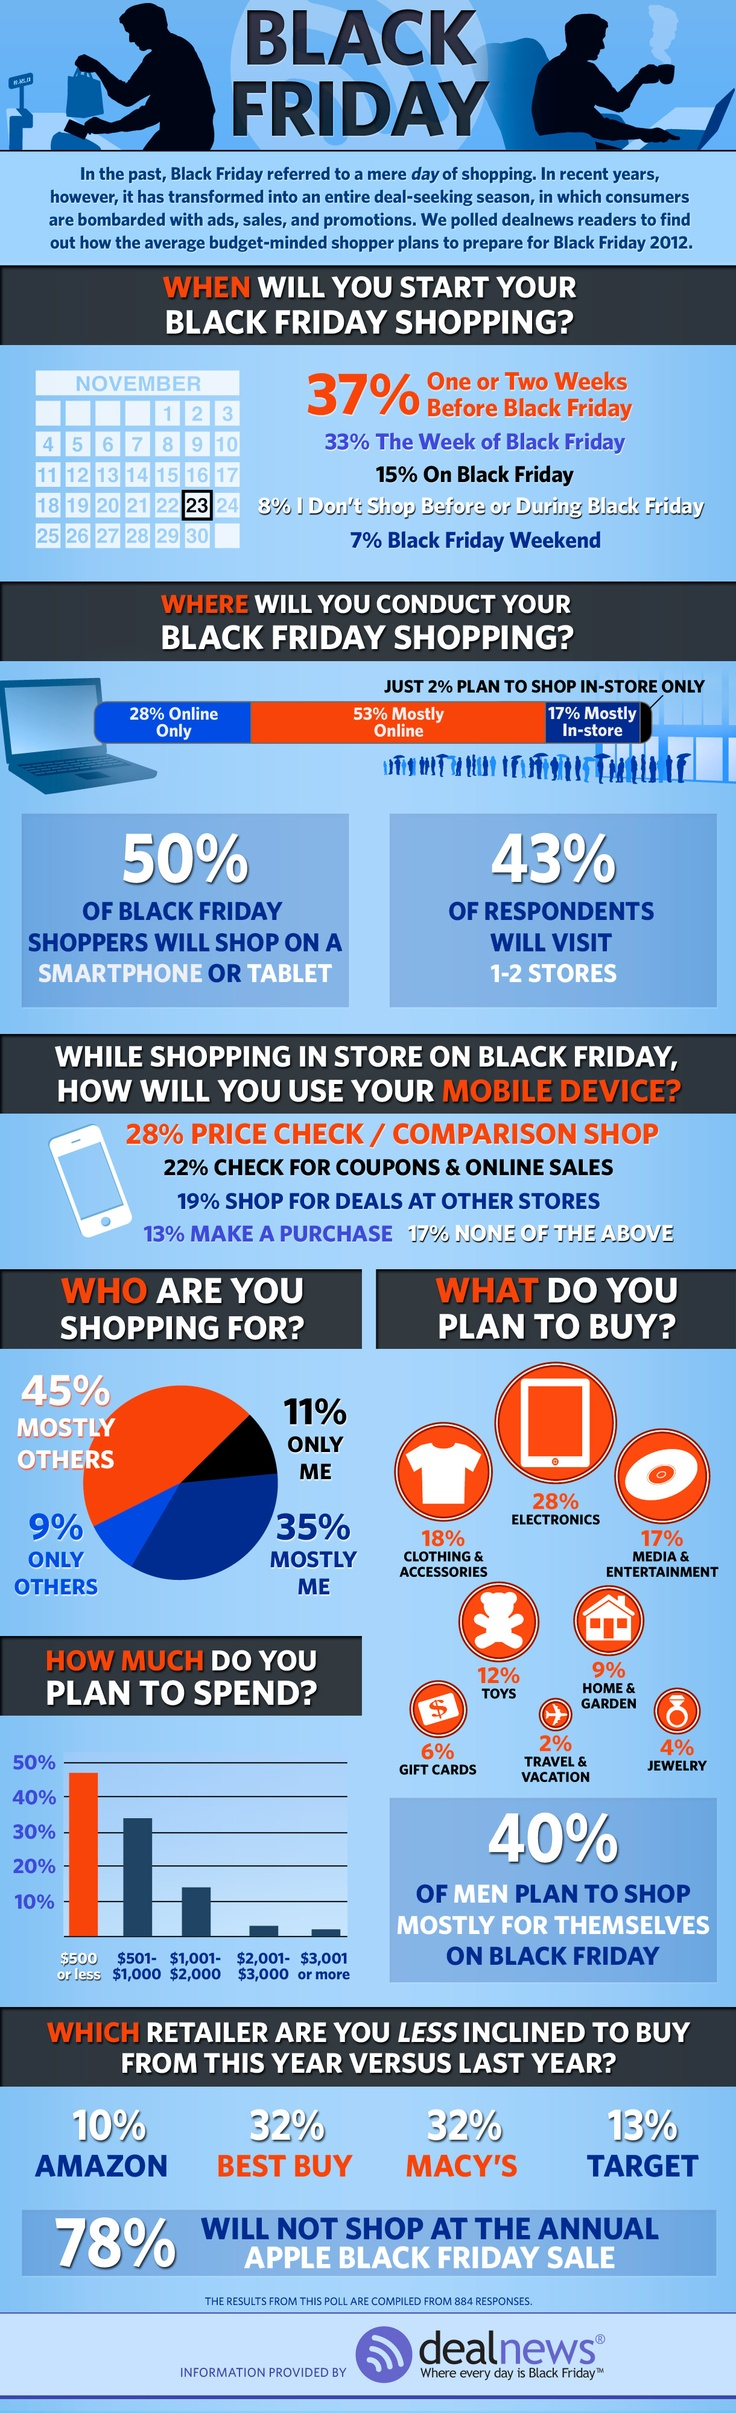 Black Friday shopping stats. 53% will shop online.